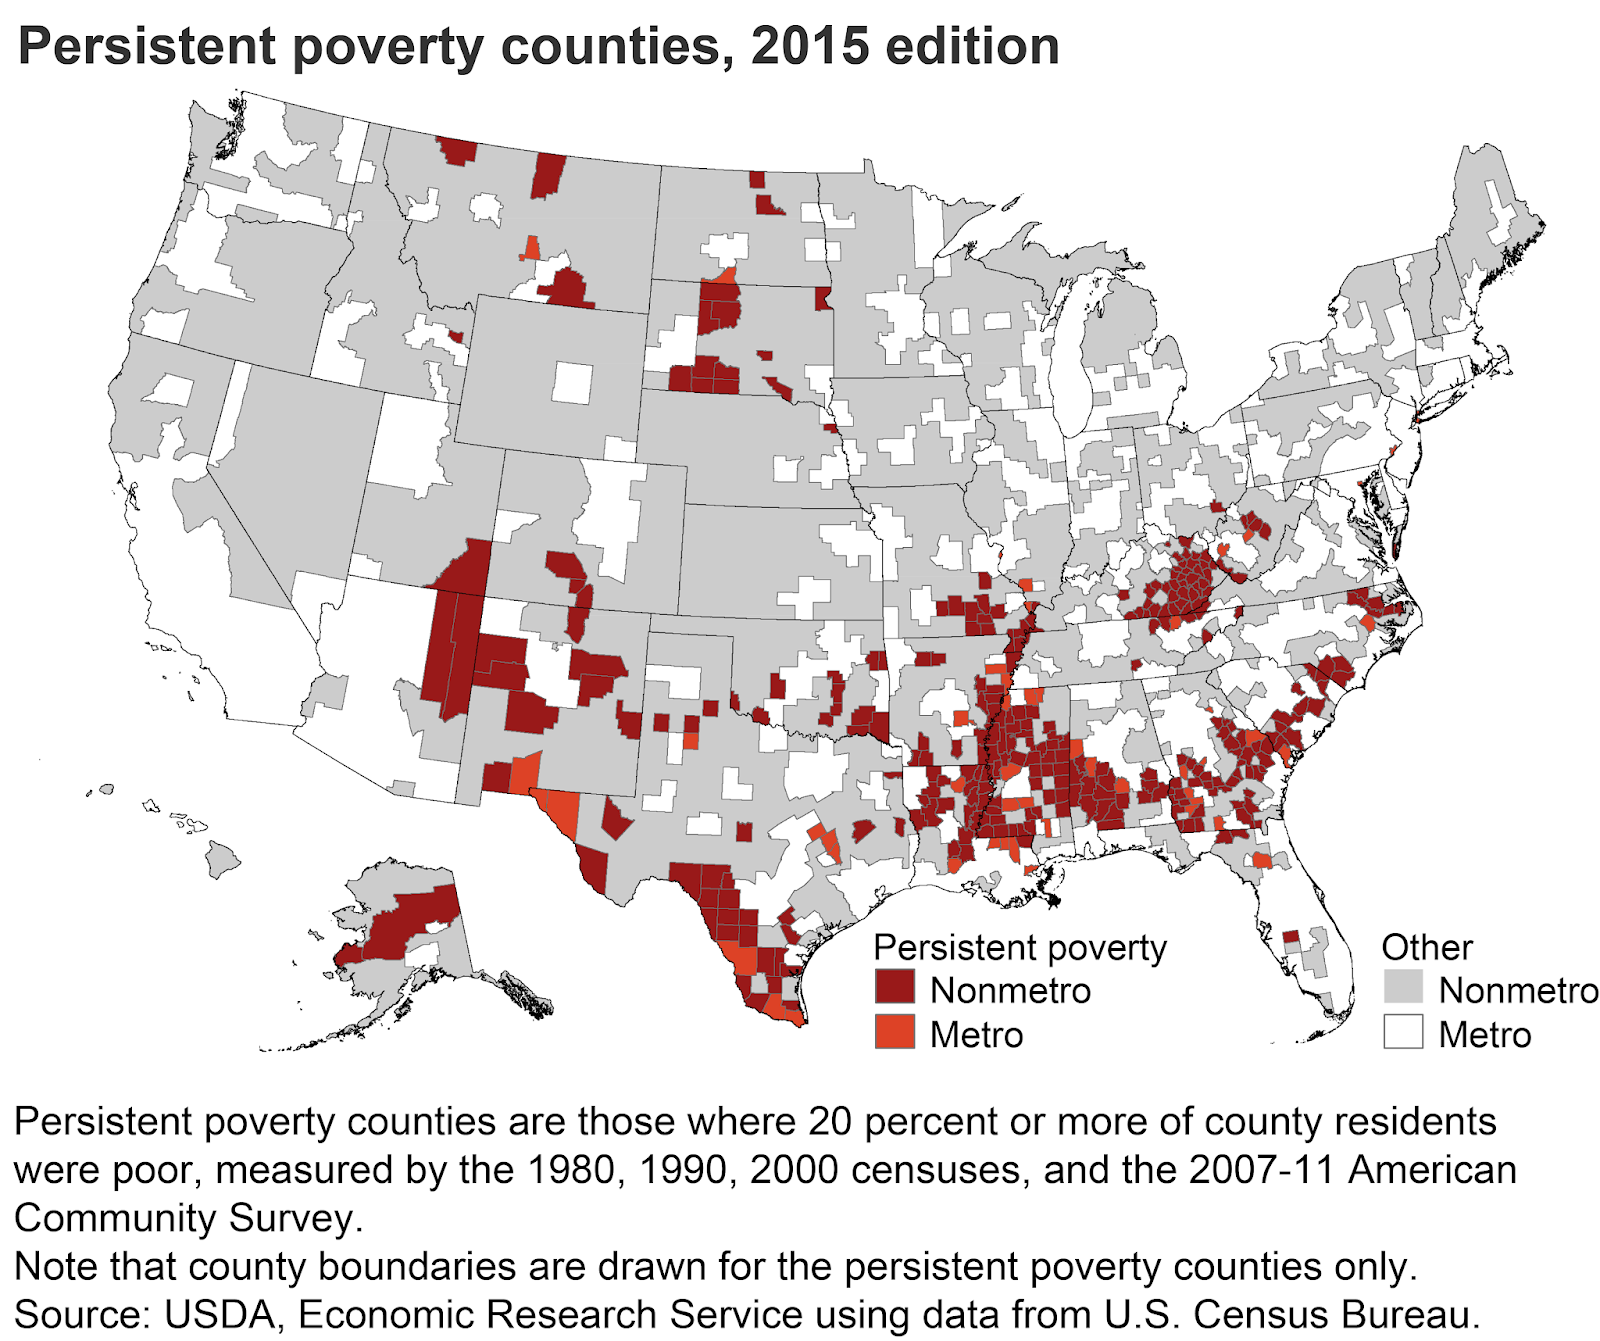 the region is one of the most densely persistent poverty region in the nation perhaps second only to the mississippi delta as illustrated by this map